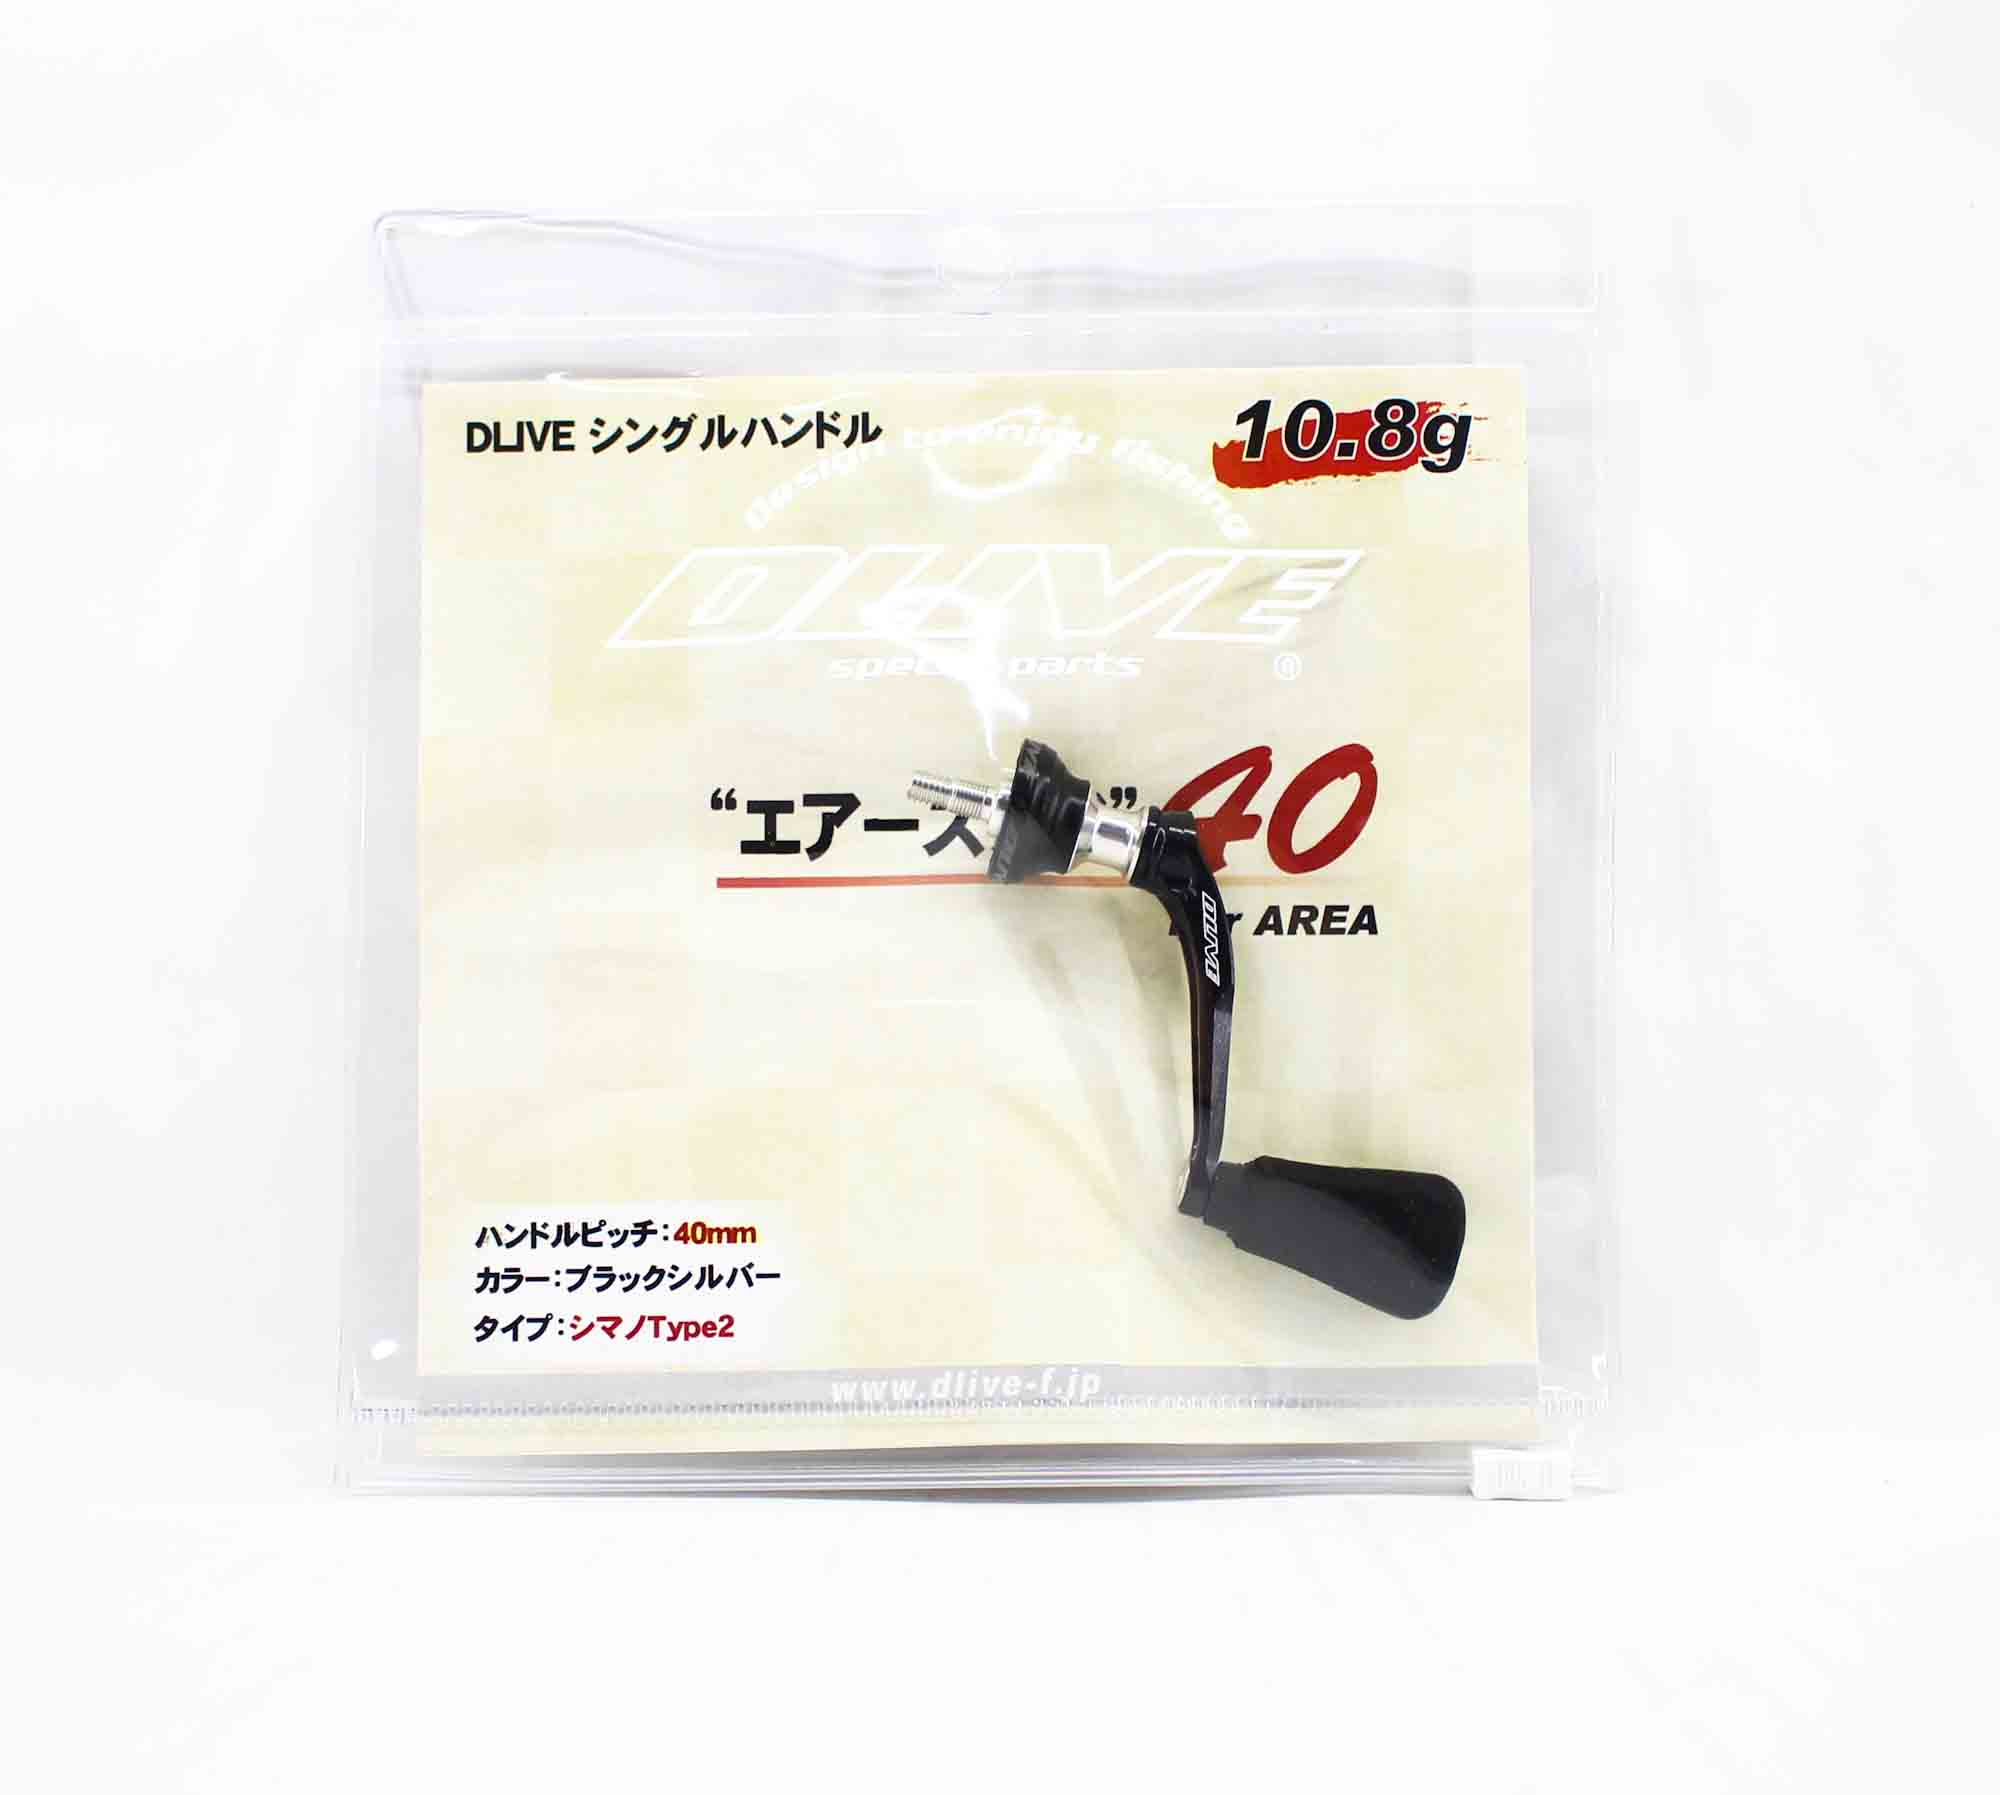 D Live Air Spinning Reel Handle Shimano Type 2 40mm 10.8 grams Silver (5722)